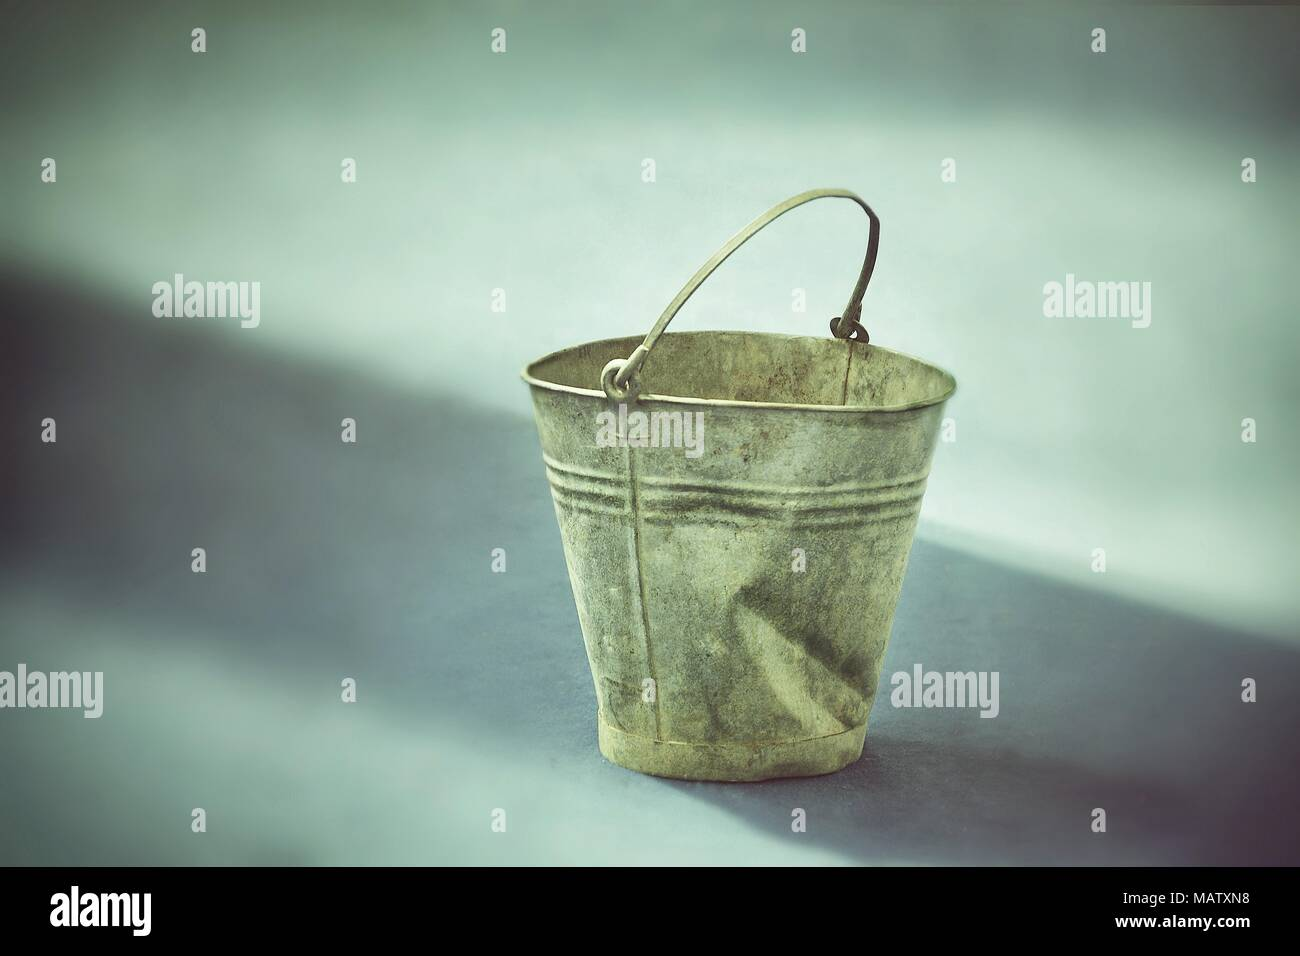 Rustic old fashioned dented bucket - Stock Image